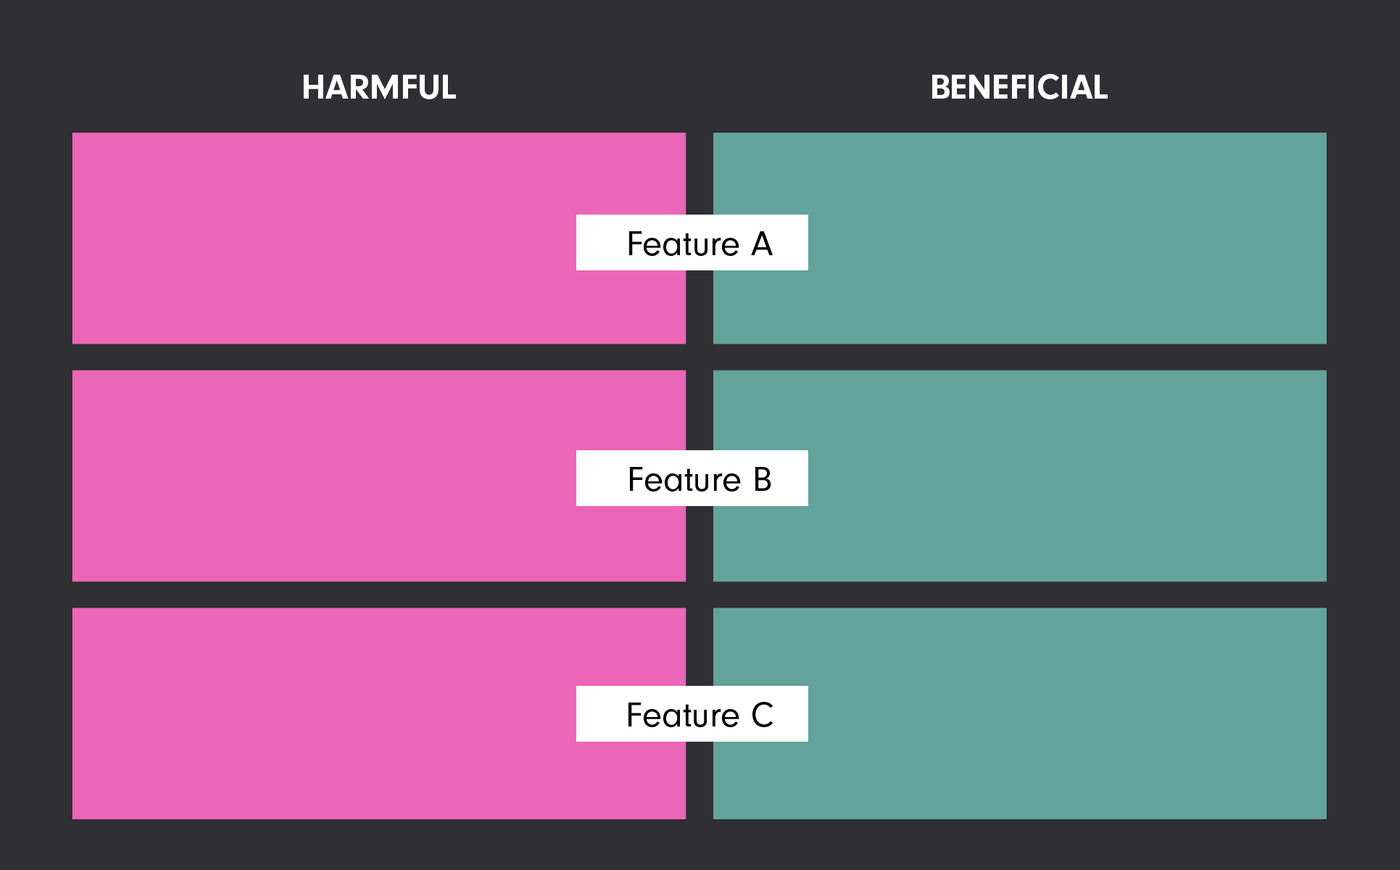 Grid with 3 rows (one per feature name) and two columns: harmful and beneficial.